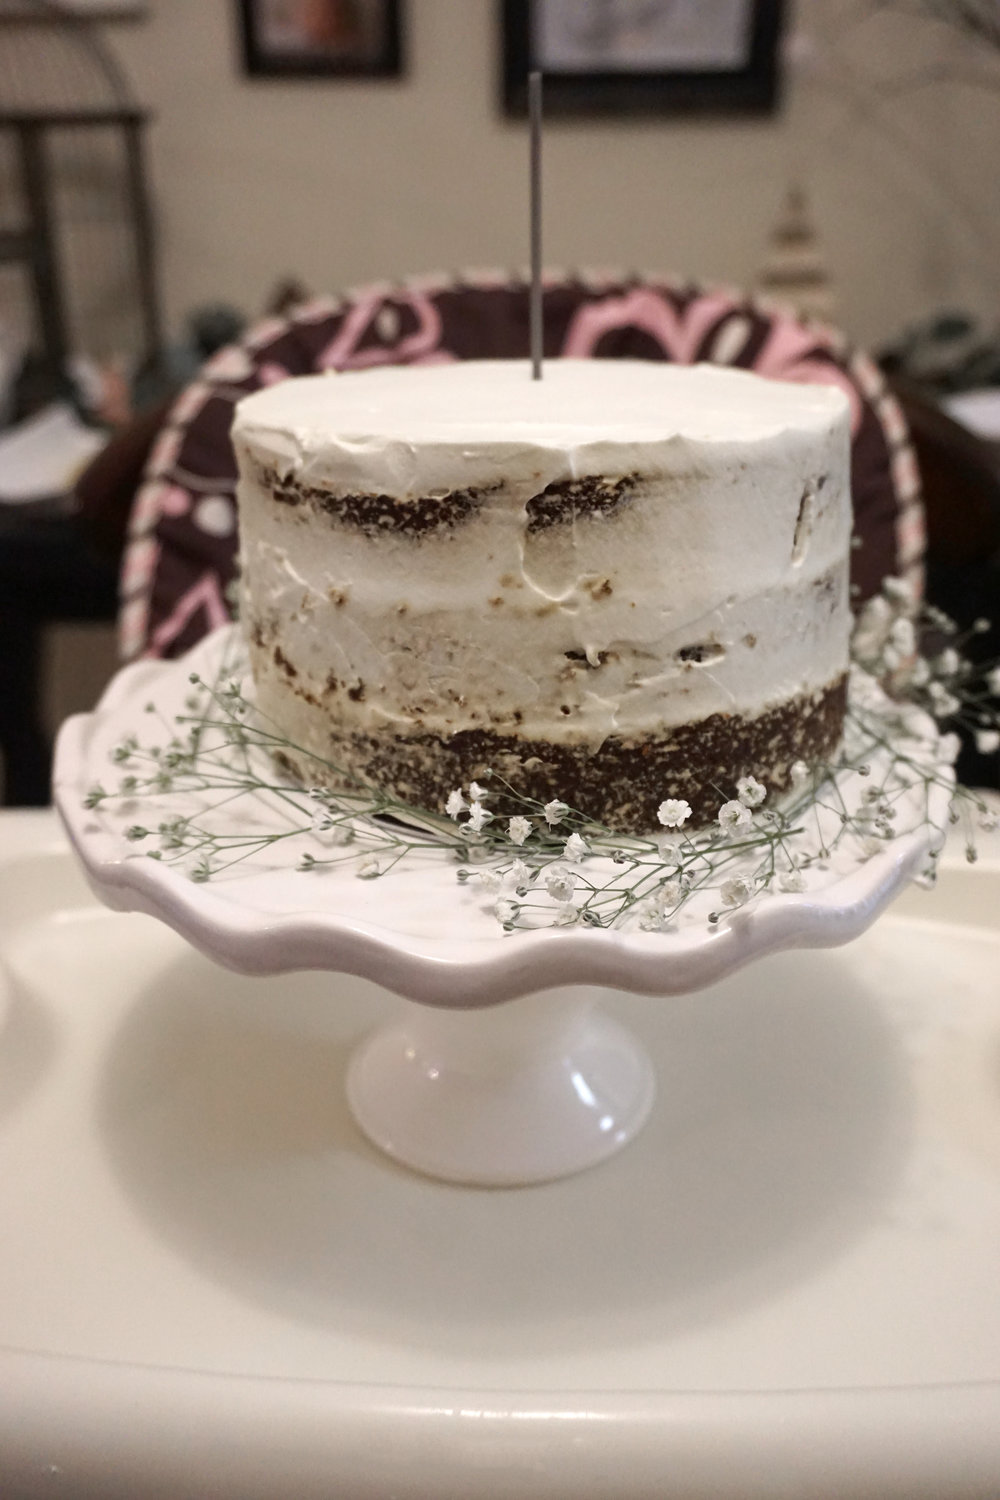 The cake almost slid off the stand when moving it onto the high chair (which is why the baby's breath is half off the stand) so what you're not seeing is a huge finger hole where I saved it ha!